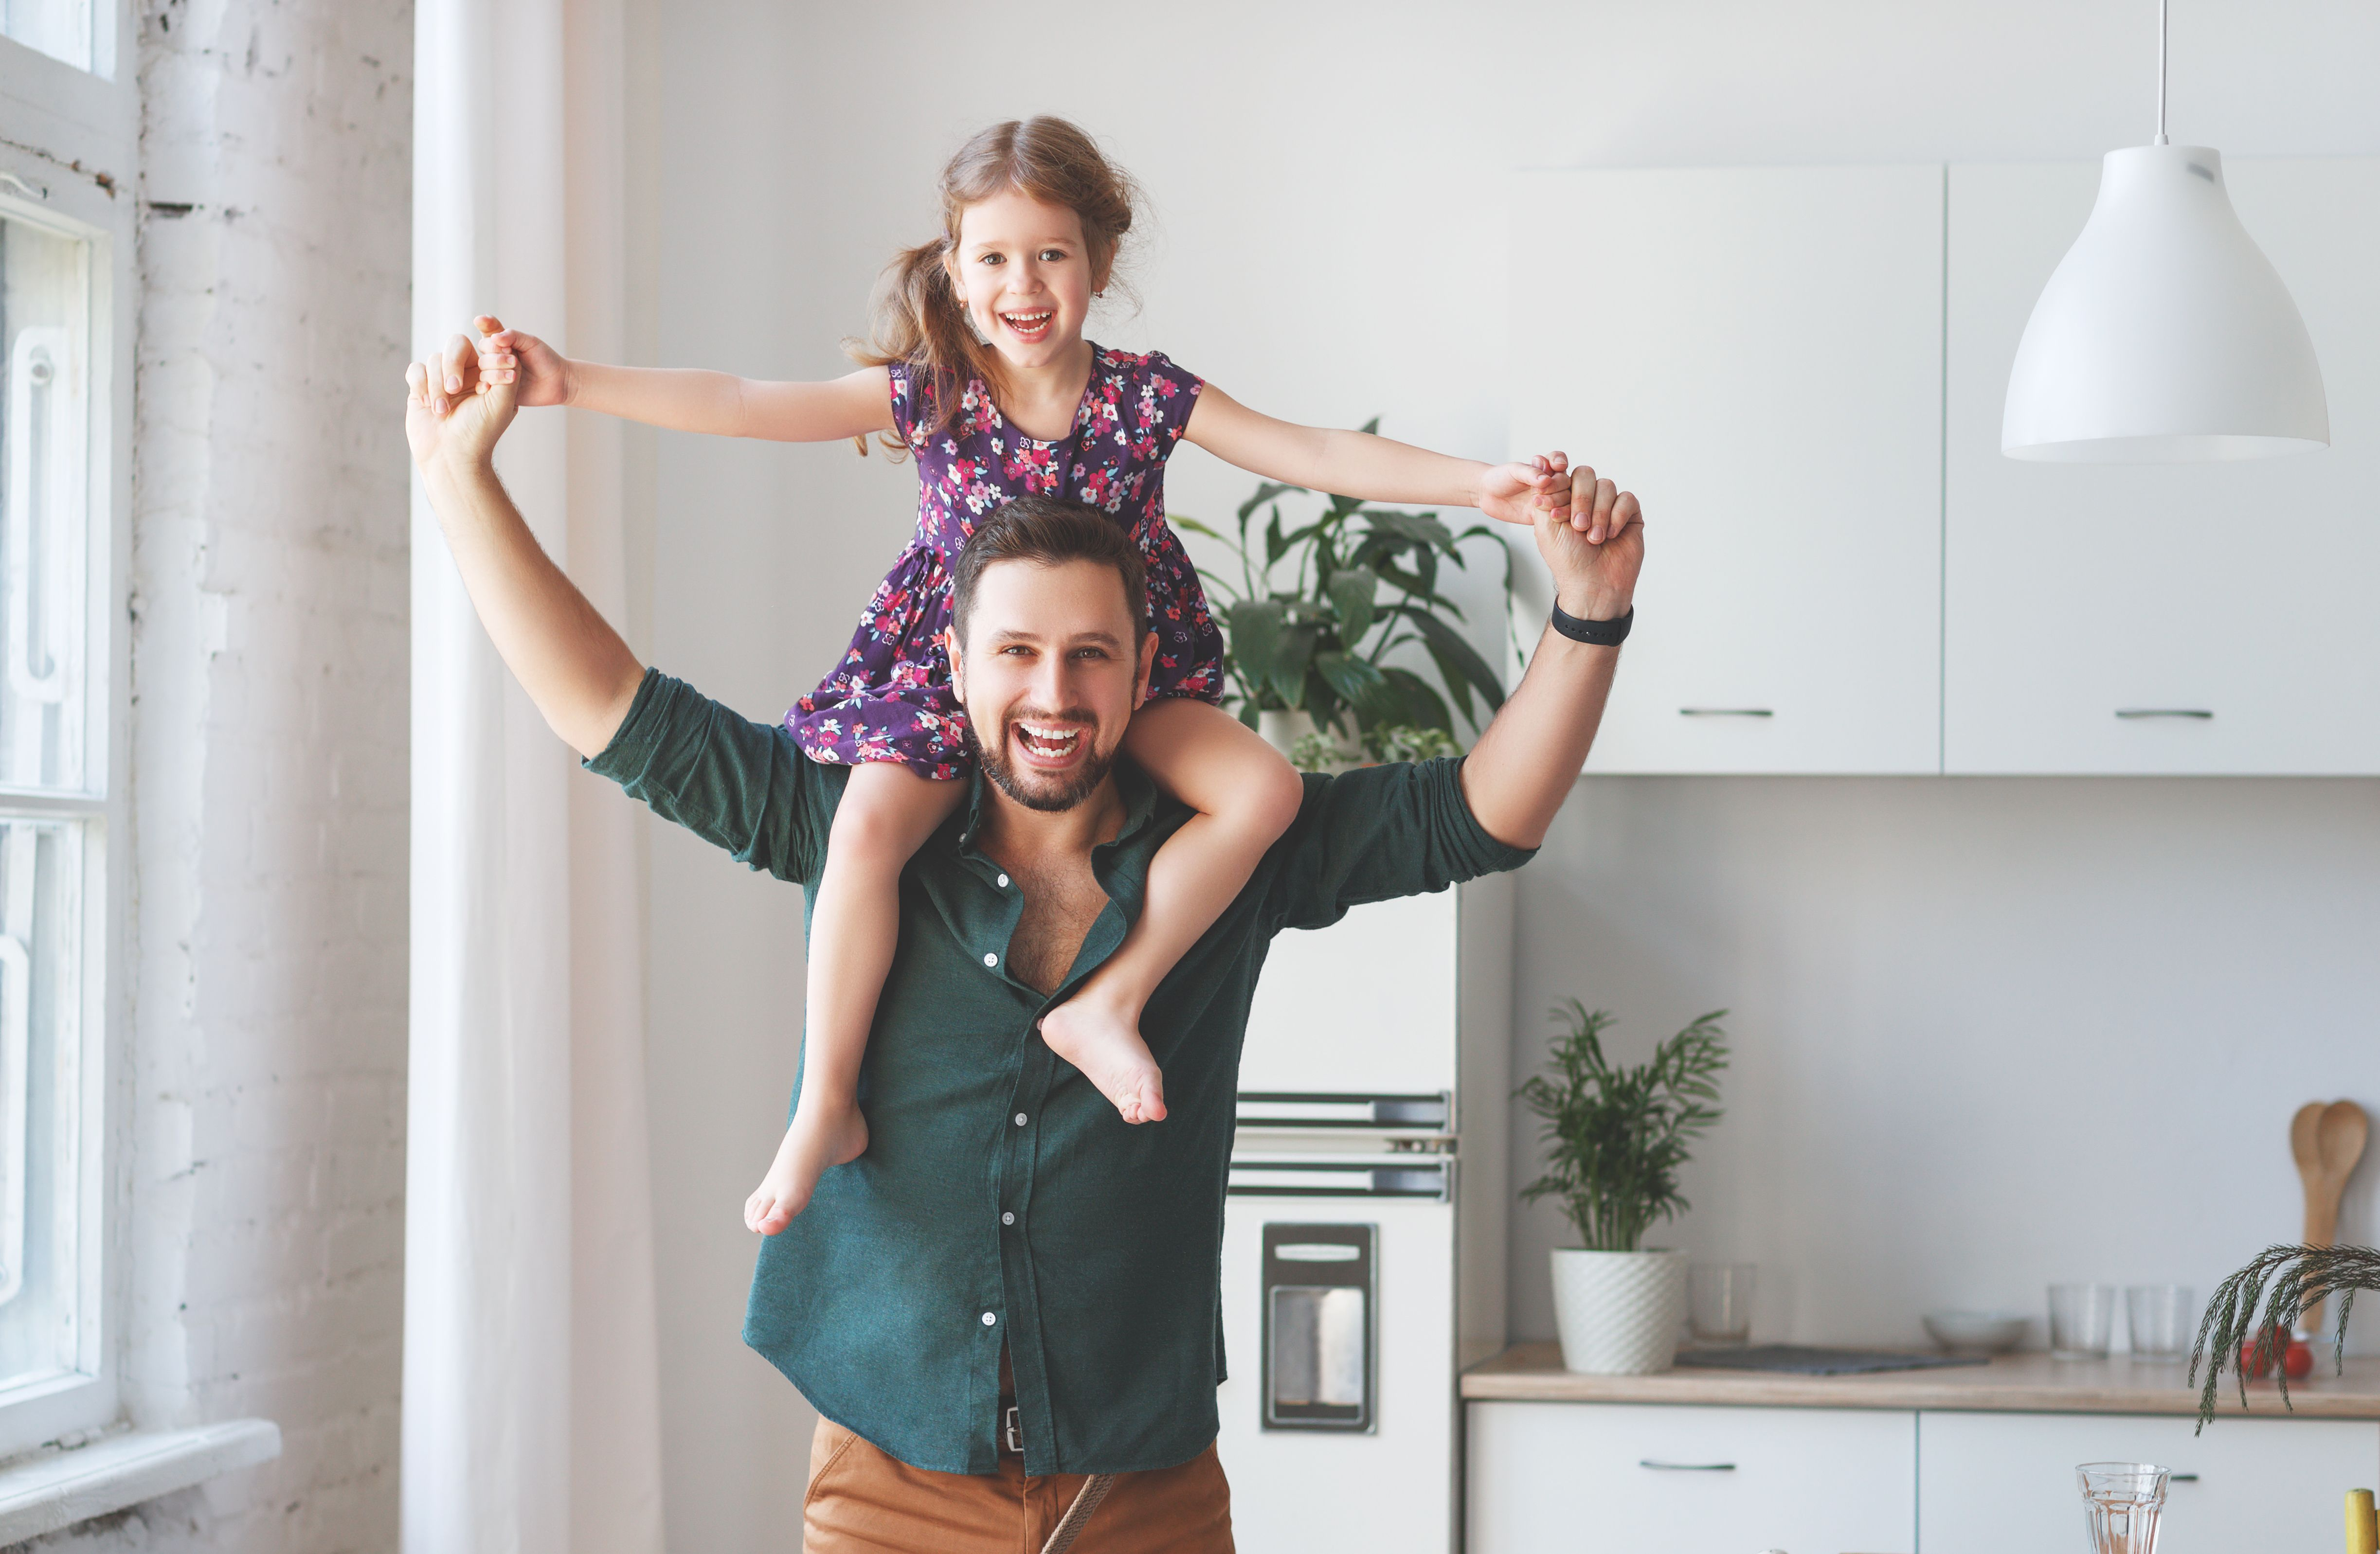 A father and his daughter playing in the living room.   Source: Shutterstock